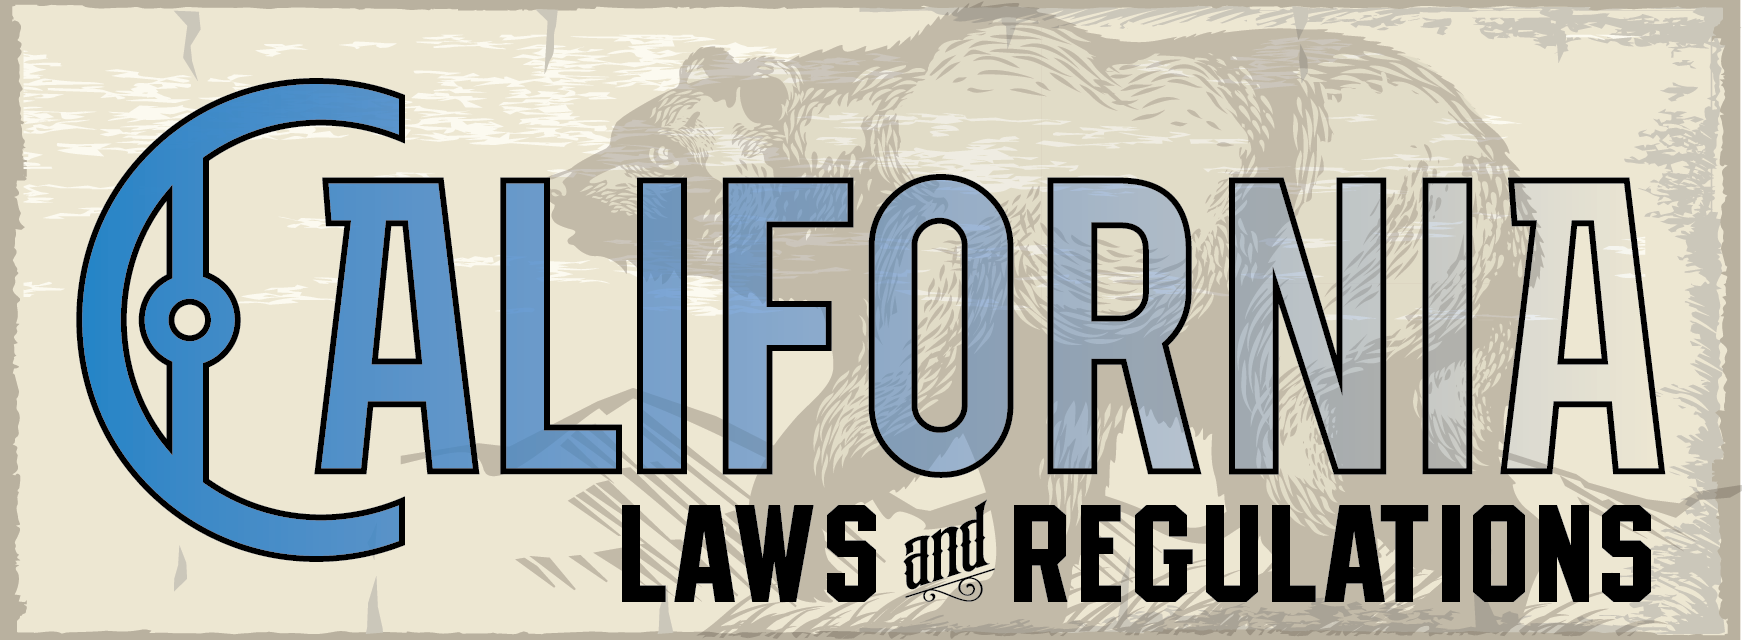 cal-law-and-regs@2x.png